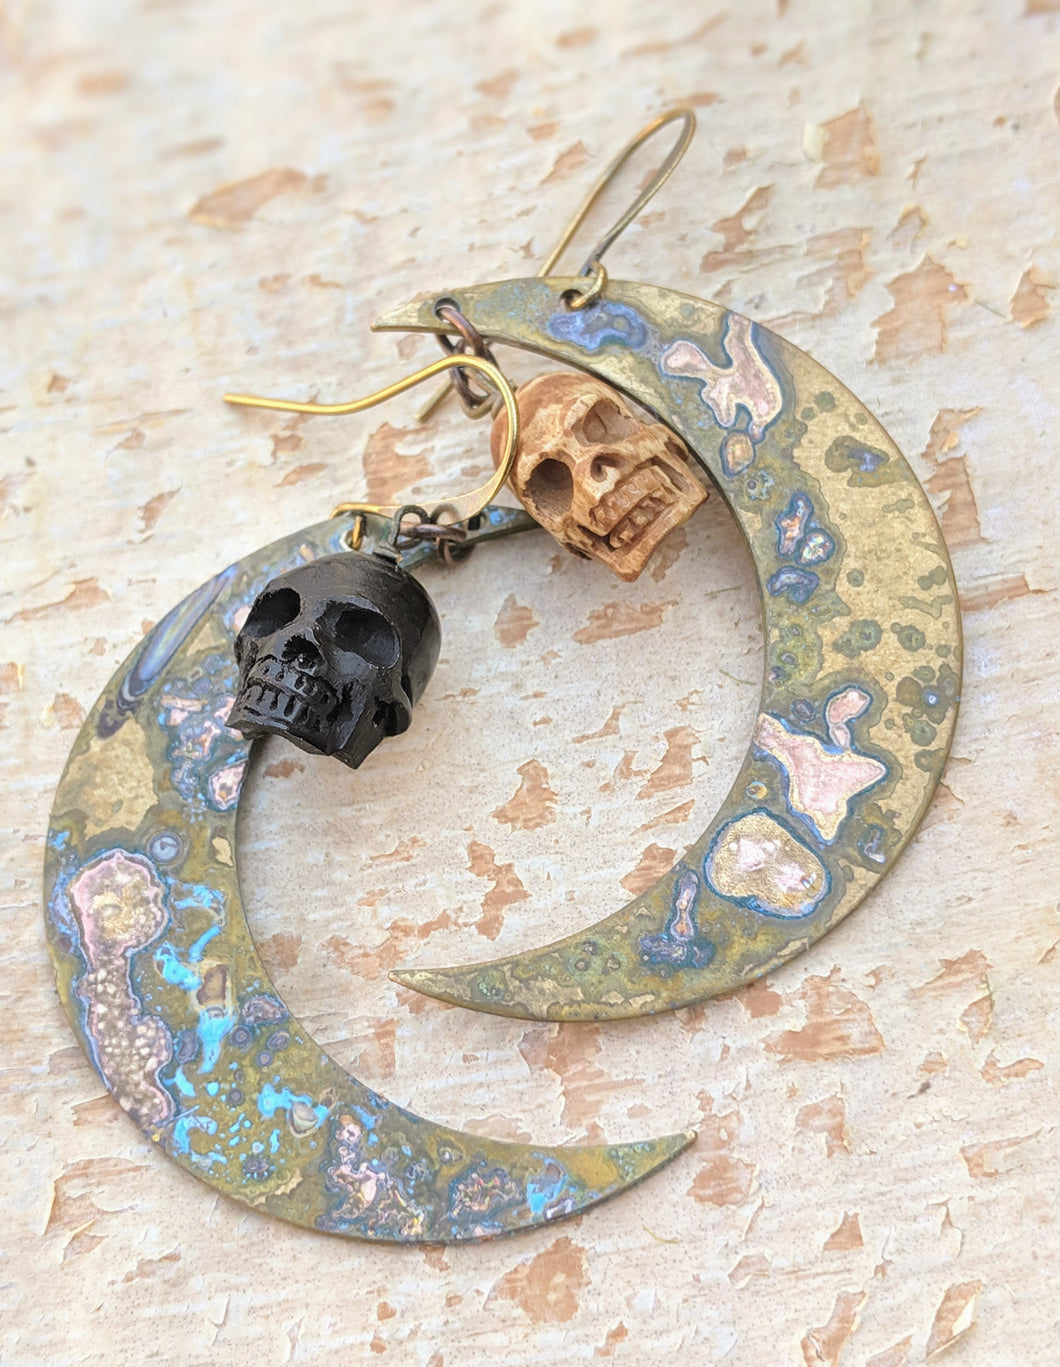 Carved Bone Skull and Big Moon Earrings - Black and White - Minxes' Trinkets